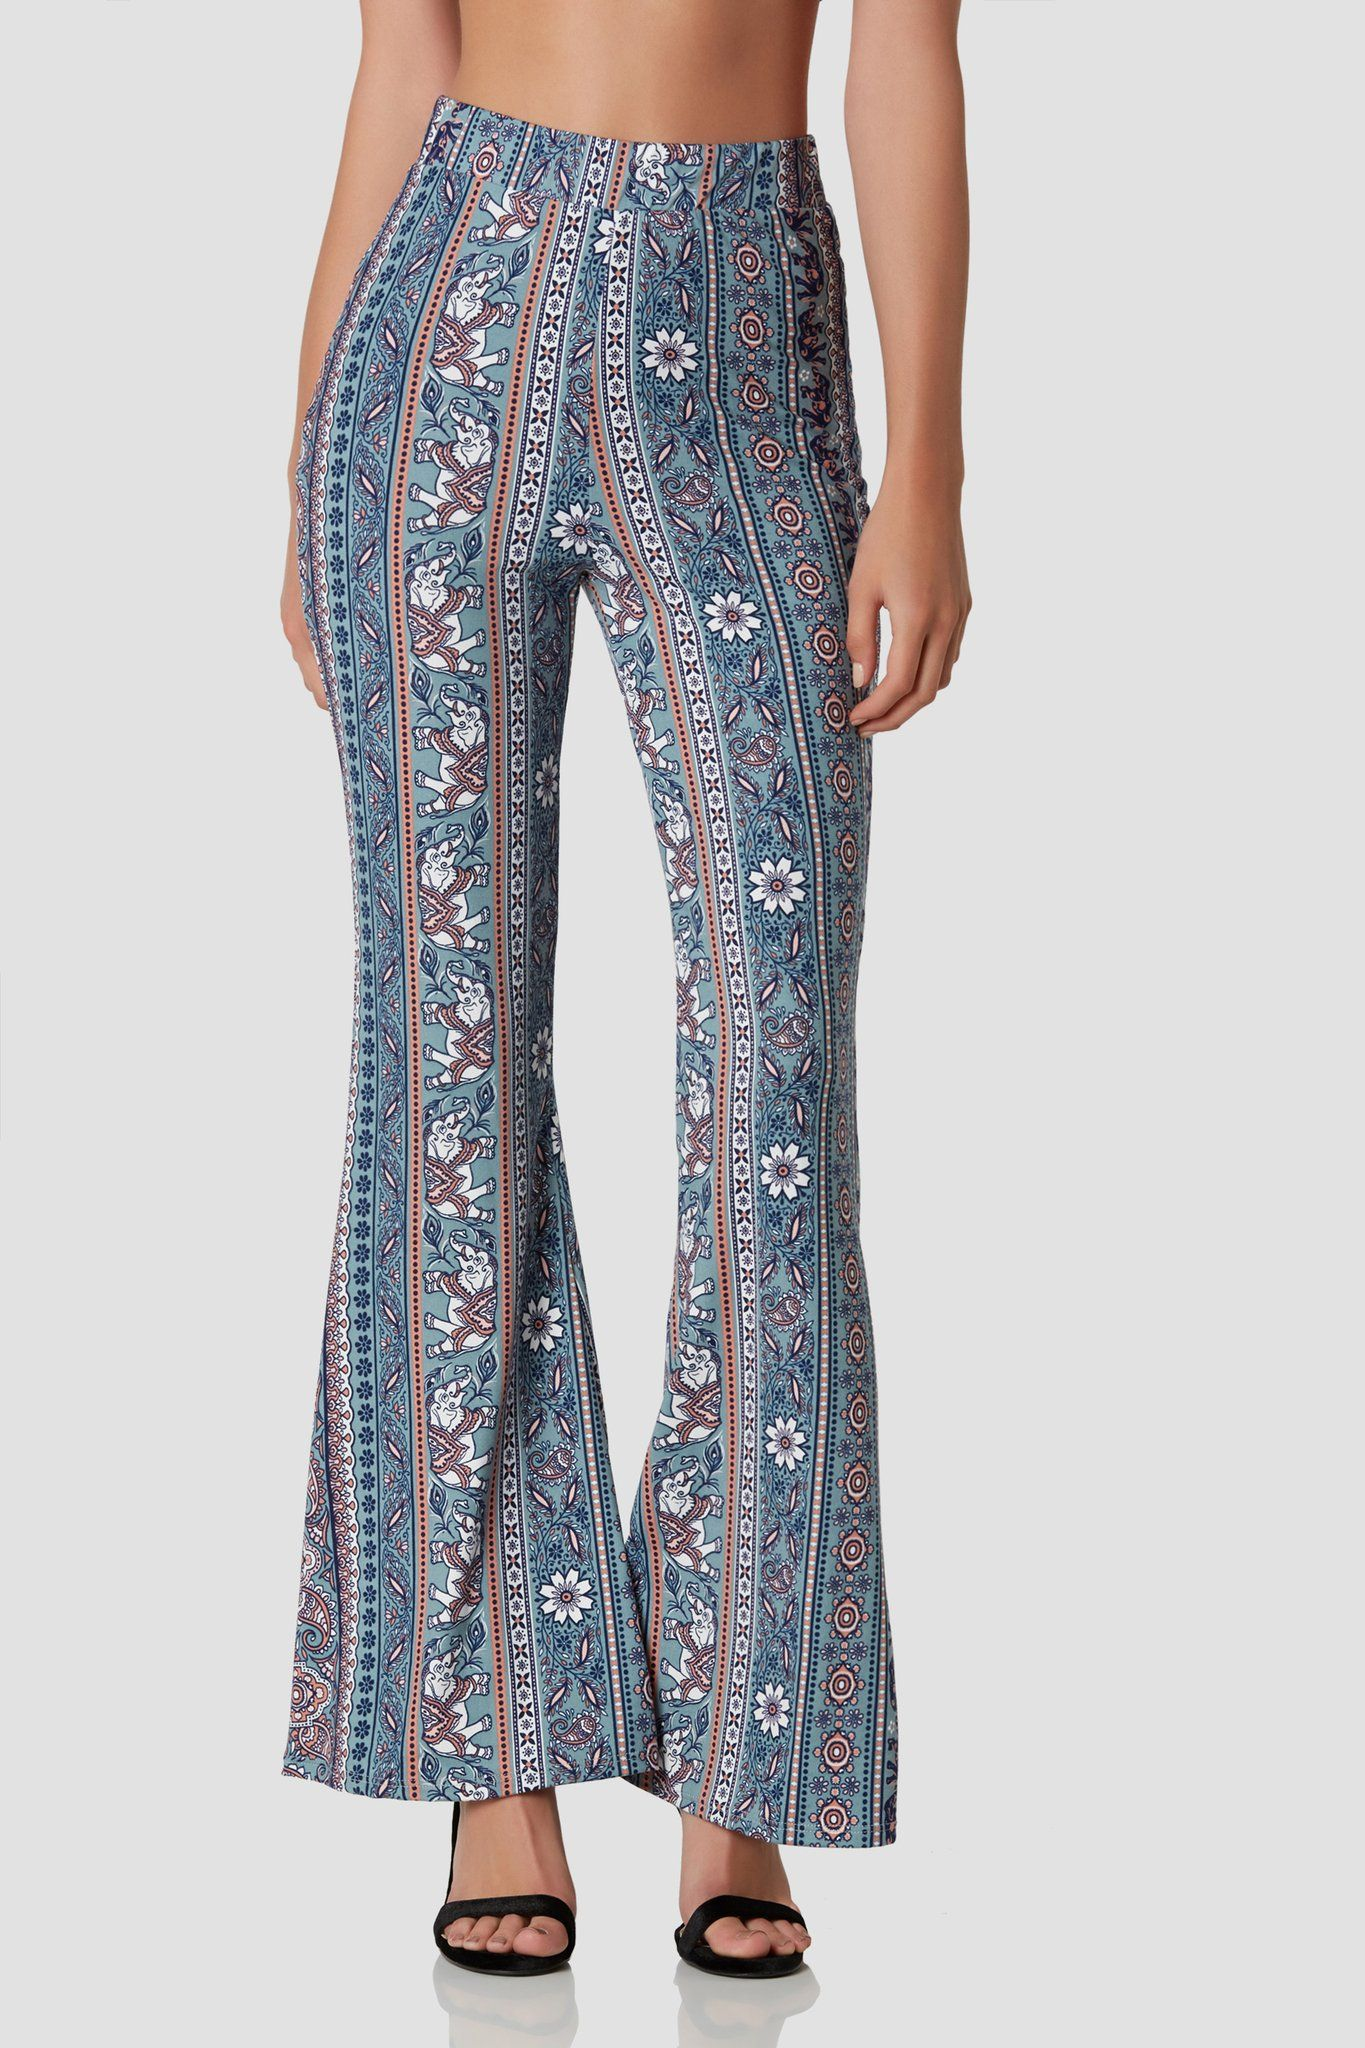 0b3e8996d8f41 Super soft high rise bell bottoms with intricate print throughout. Comfortable  stretch with elasticized waistband.